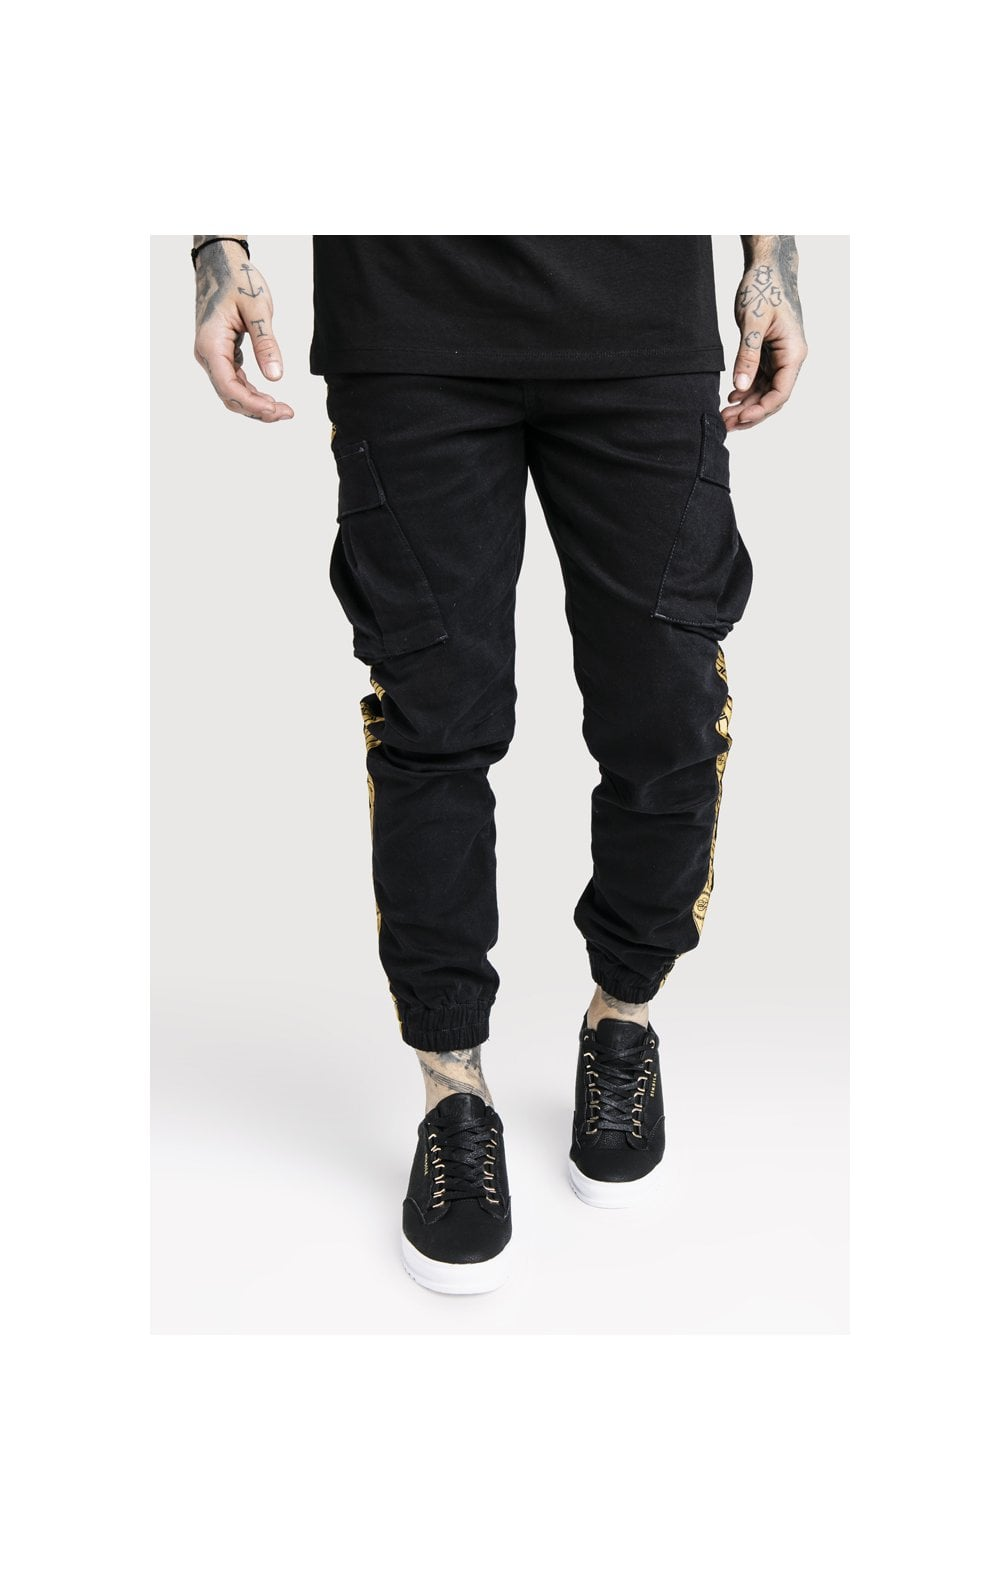 Load image into Gallery viewer, SikSilk x Dani Alves Cargo Pants - Black (2)